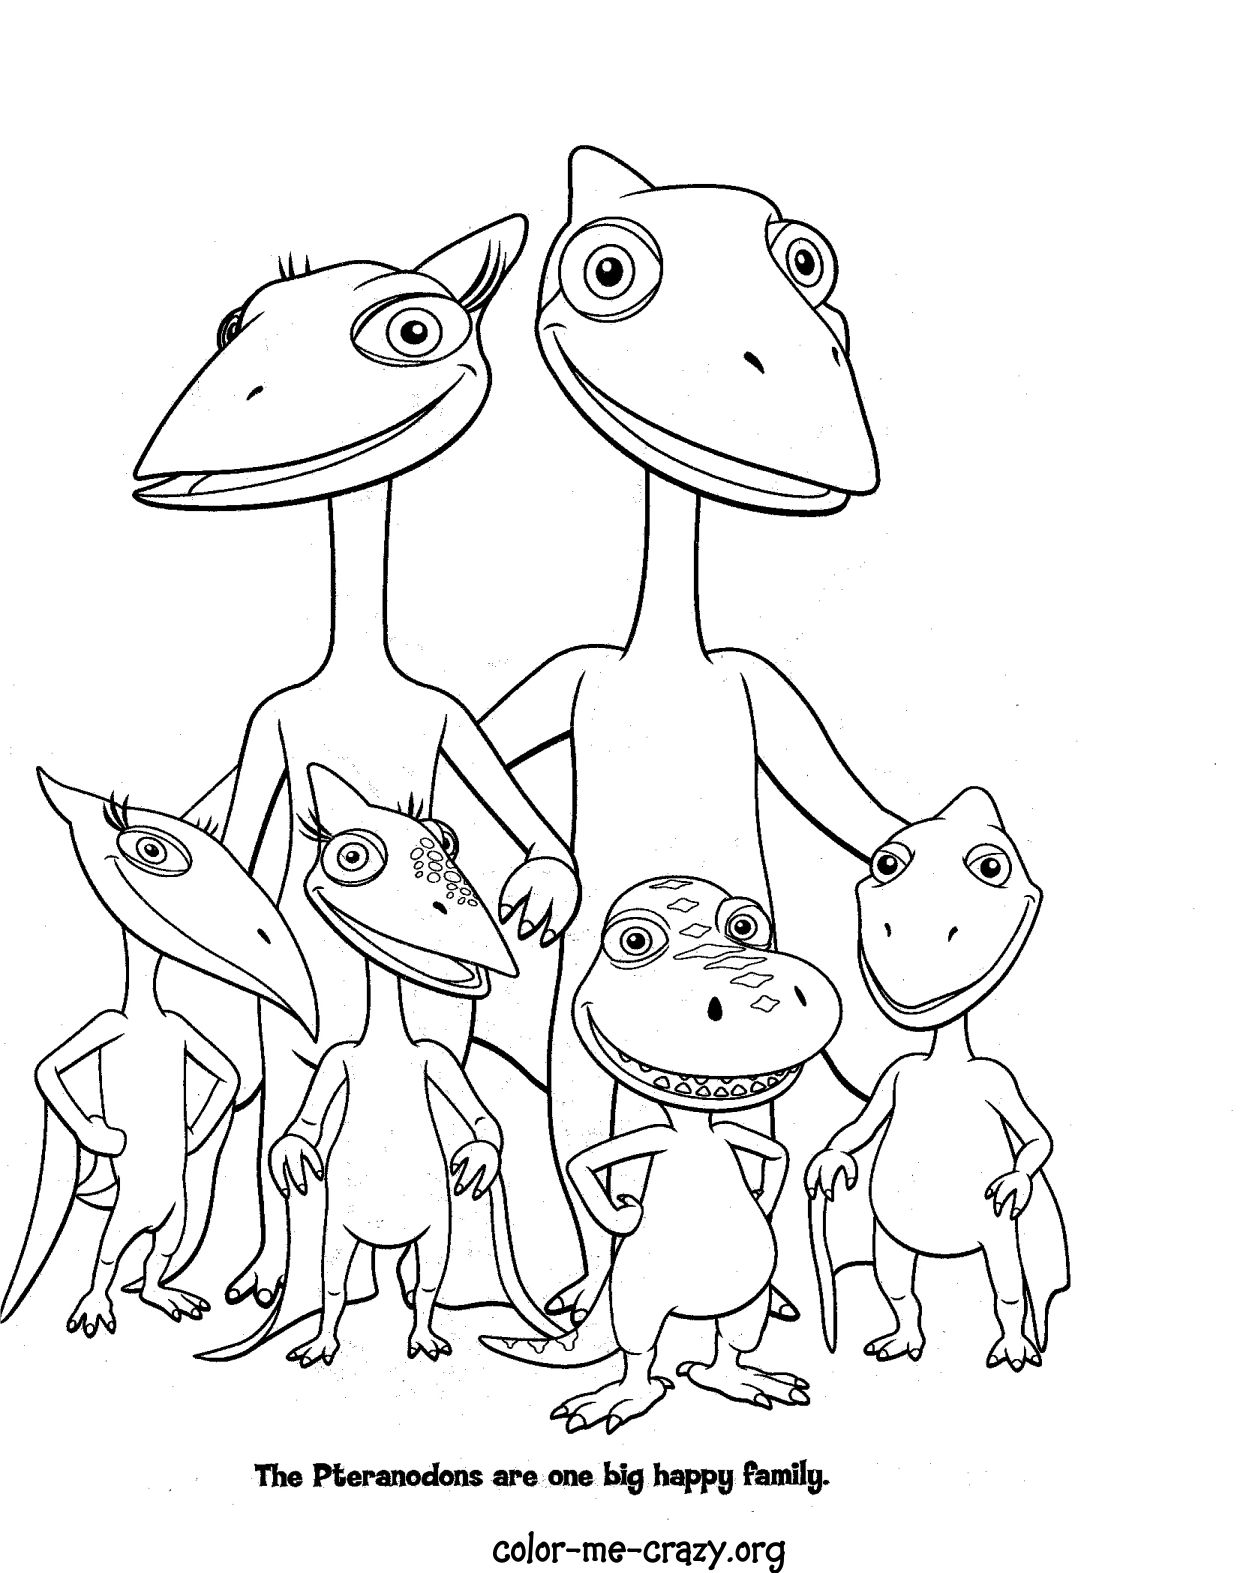 coloring dinosaur free printables coloring pages dinosaur free printable coloring pages coloring free dinosaur printables 1 1